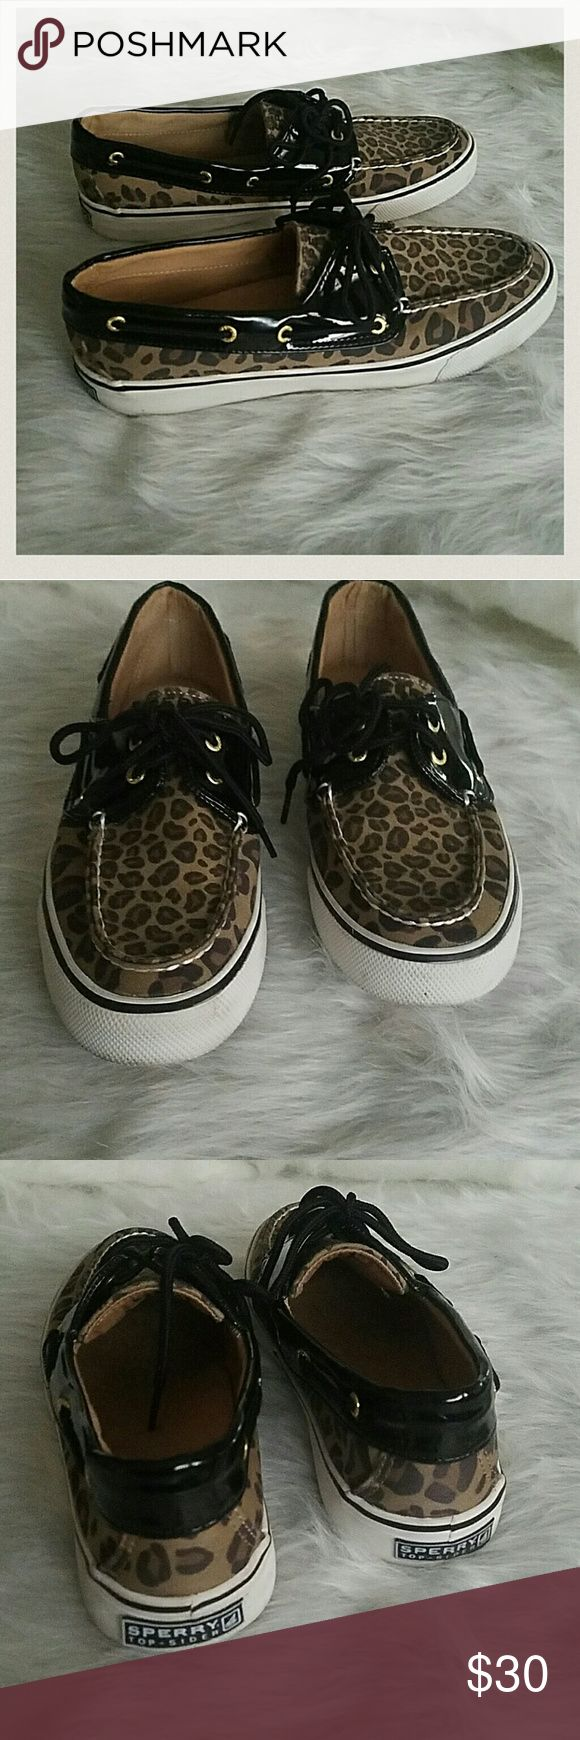 Leopard Sperry Biscayne Top-Sider  Leopard upper print with patent.  2 eye lace up closure.  Flexible rubber sole. Very Clean interior and exterior. Sperry Top-Sider Shoes Flats & Loafers